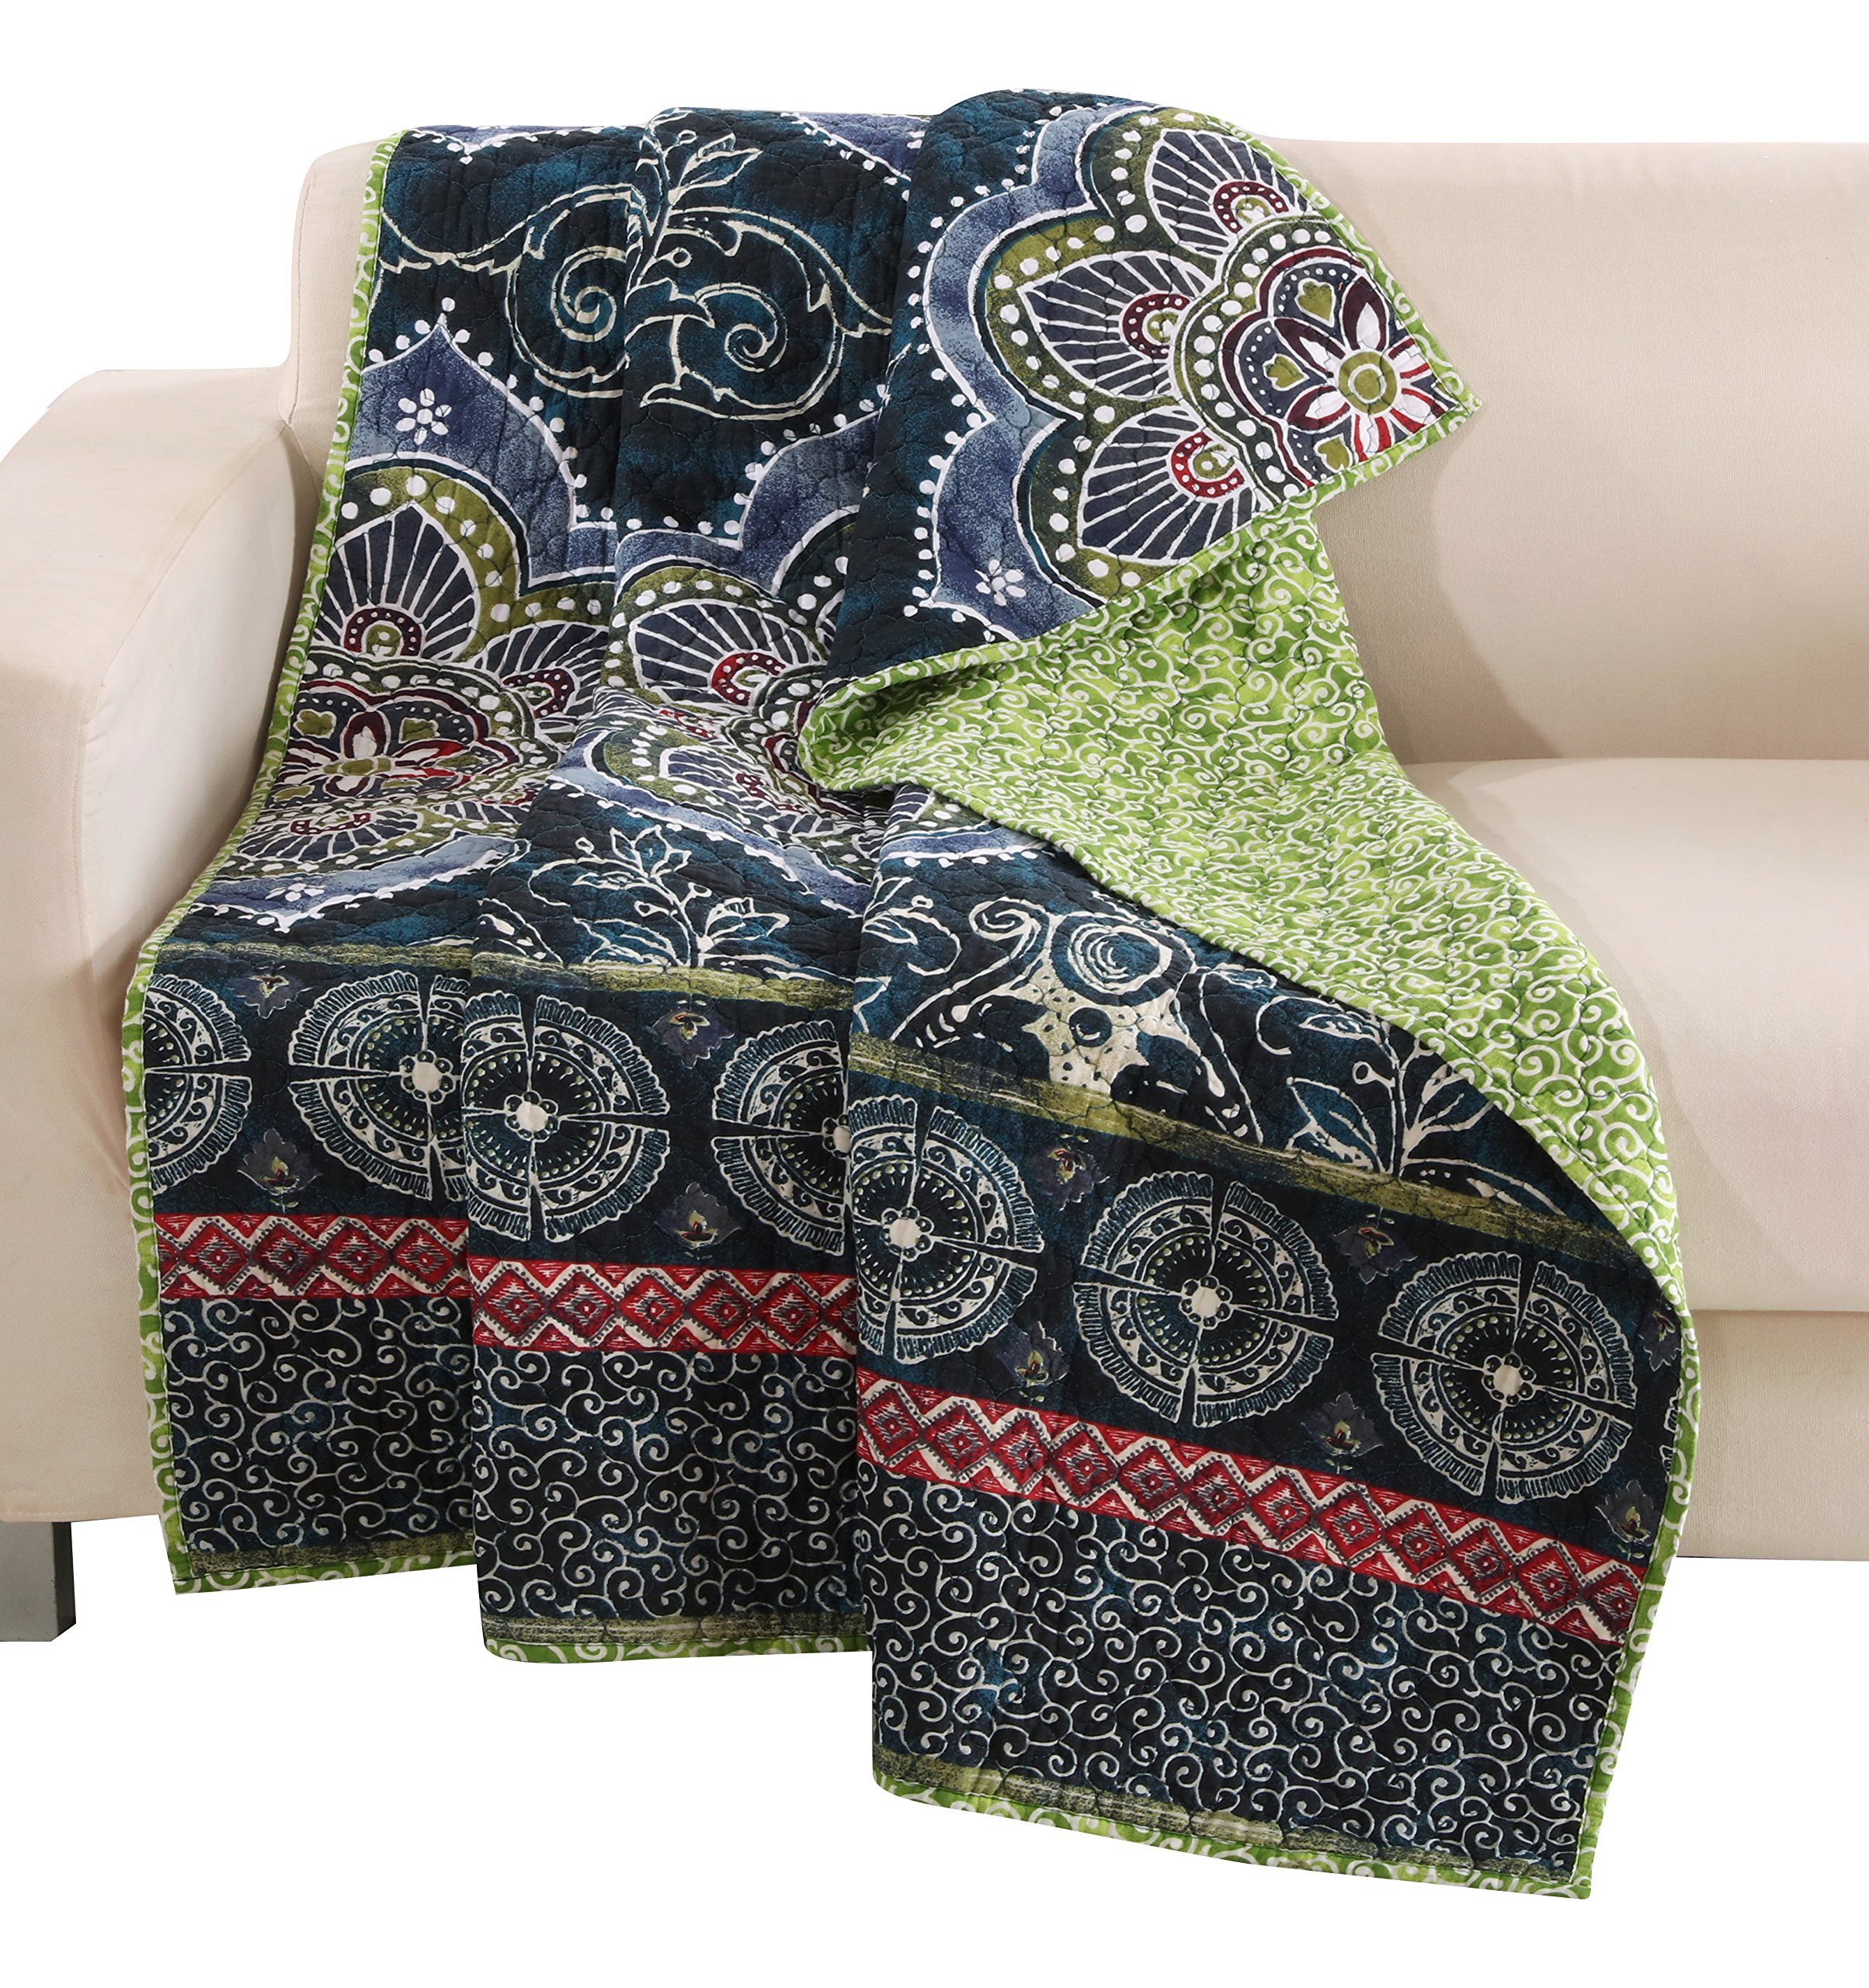 Barefoot Bungalow Twyla Midnight Quilted Throw - The perfect quilt for your couch or easy chair, also makes a great layering piece Machine quilted for durability and surface interest Reverses to a coordinate Fashion print for two looks in one - blankets-throws, bedroom-sheets-comforters, bedroom - A1ADlbxsIEL -